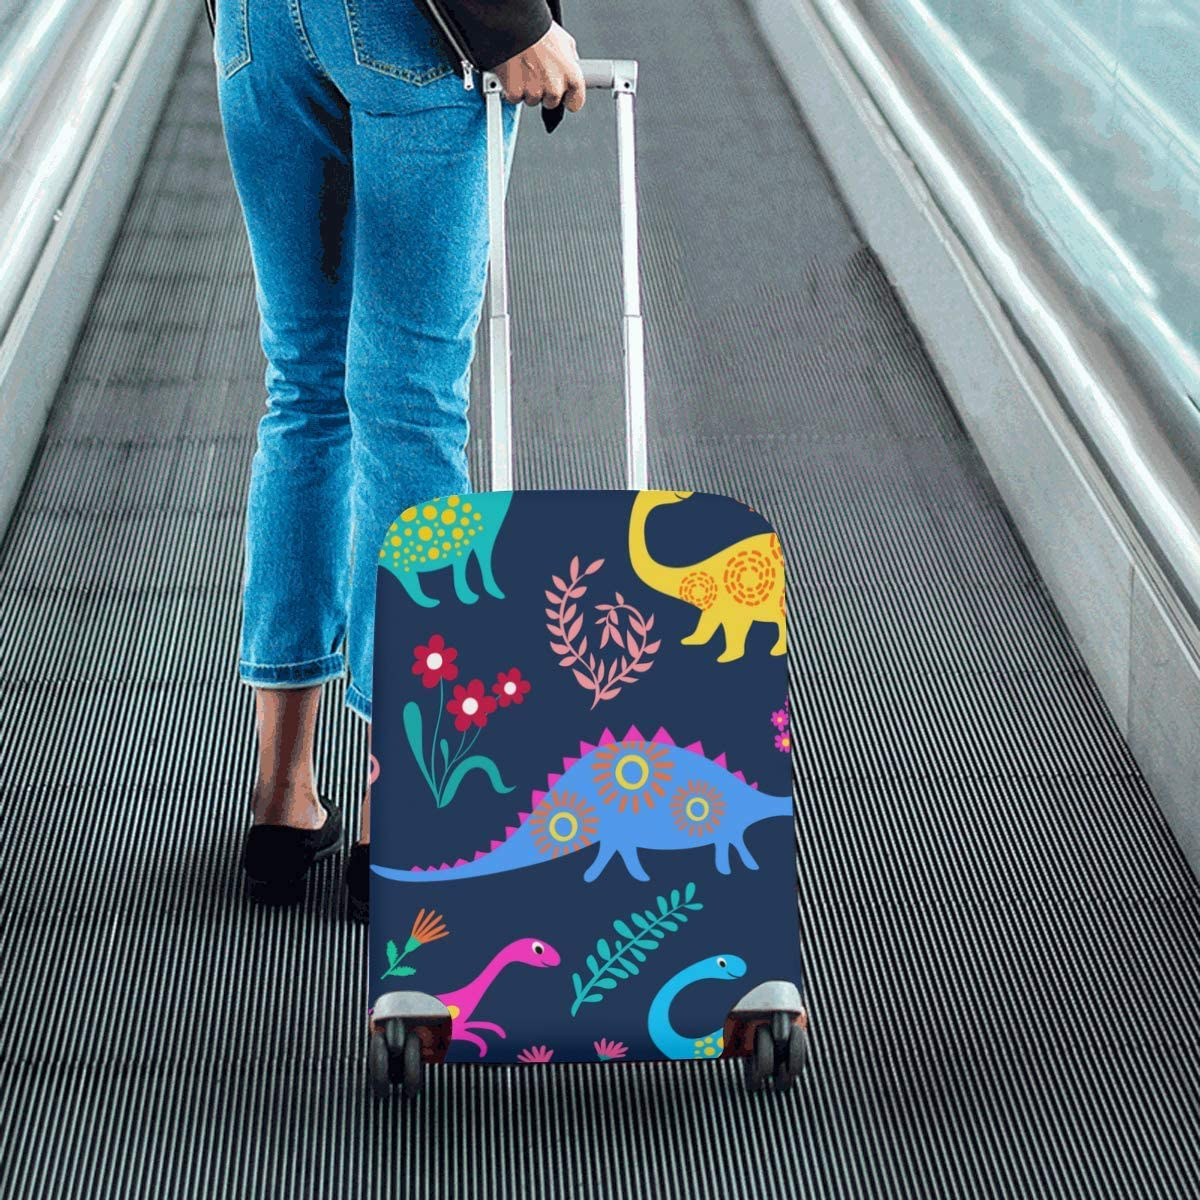 InterestPrint Luggage Cover Dinosaurs Traveling Luggage Cover Polyester Suitcase 20x24 Inch Unisex